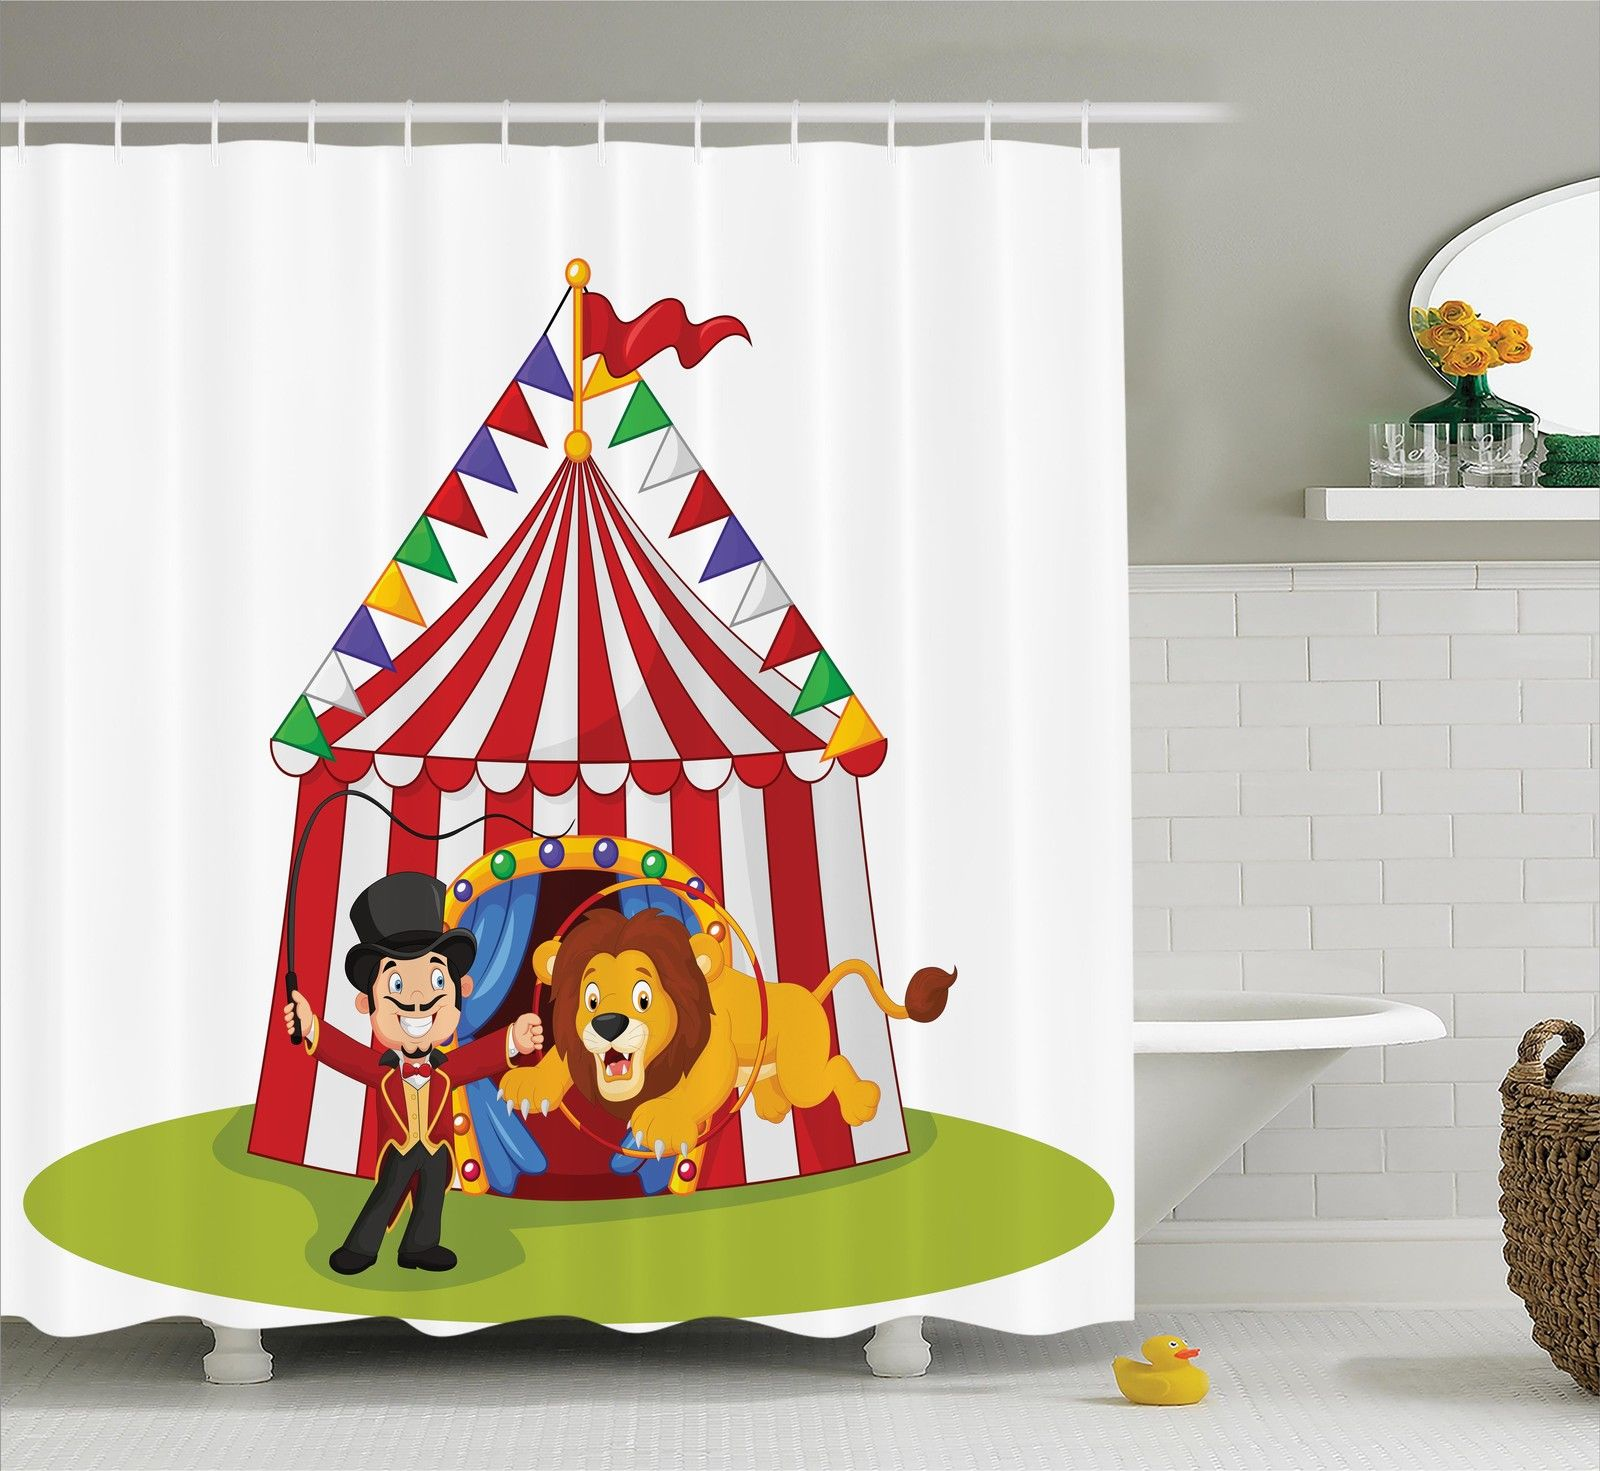 Circus Decor  Cartoon Lion Jumping Through Ring With Circus Tent Celebration Show, Bathroom Accessories, 69W X 84L Inches Extra Long, By Ambesonne